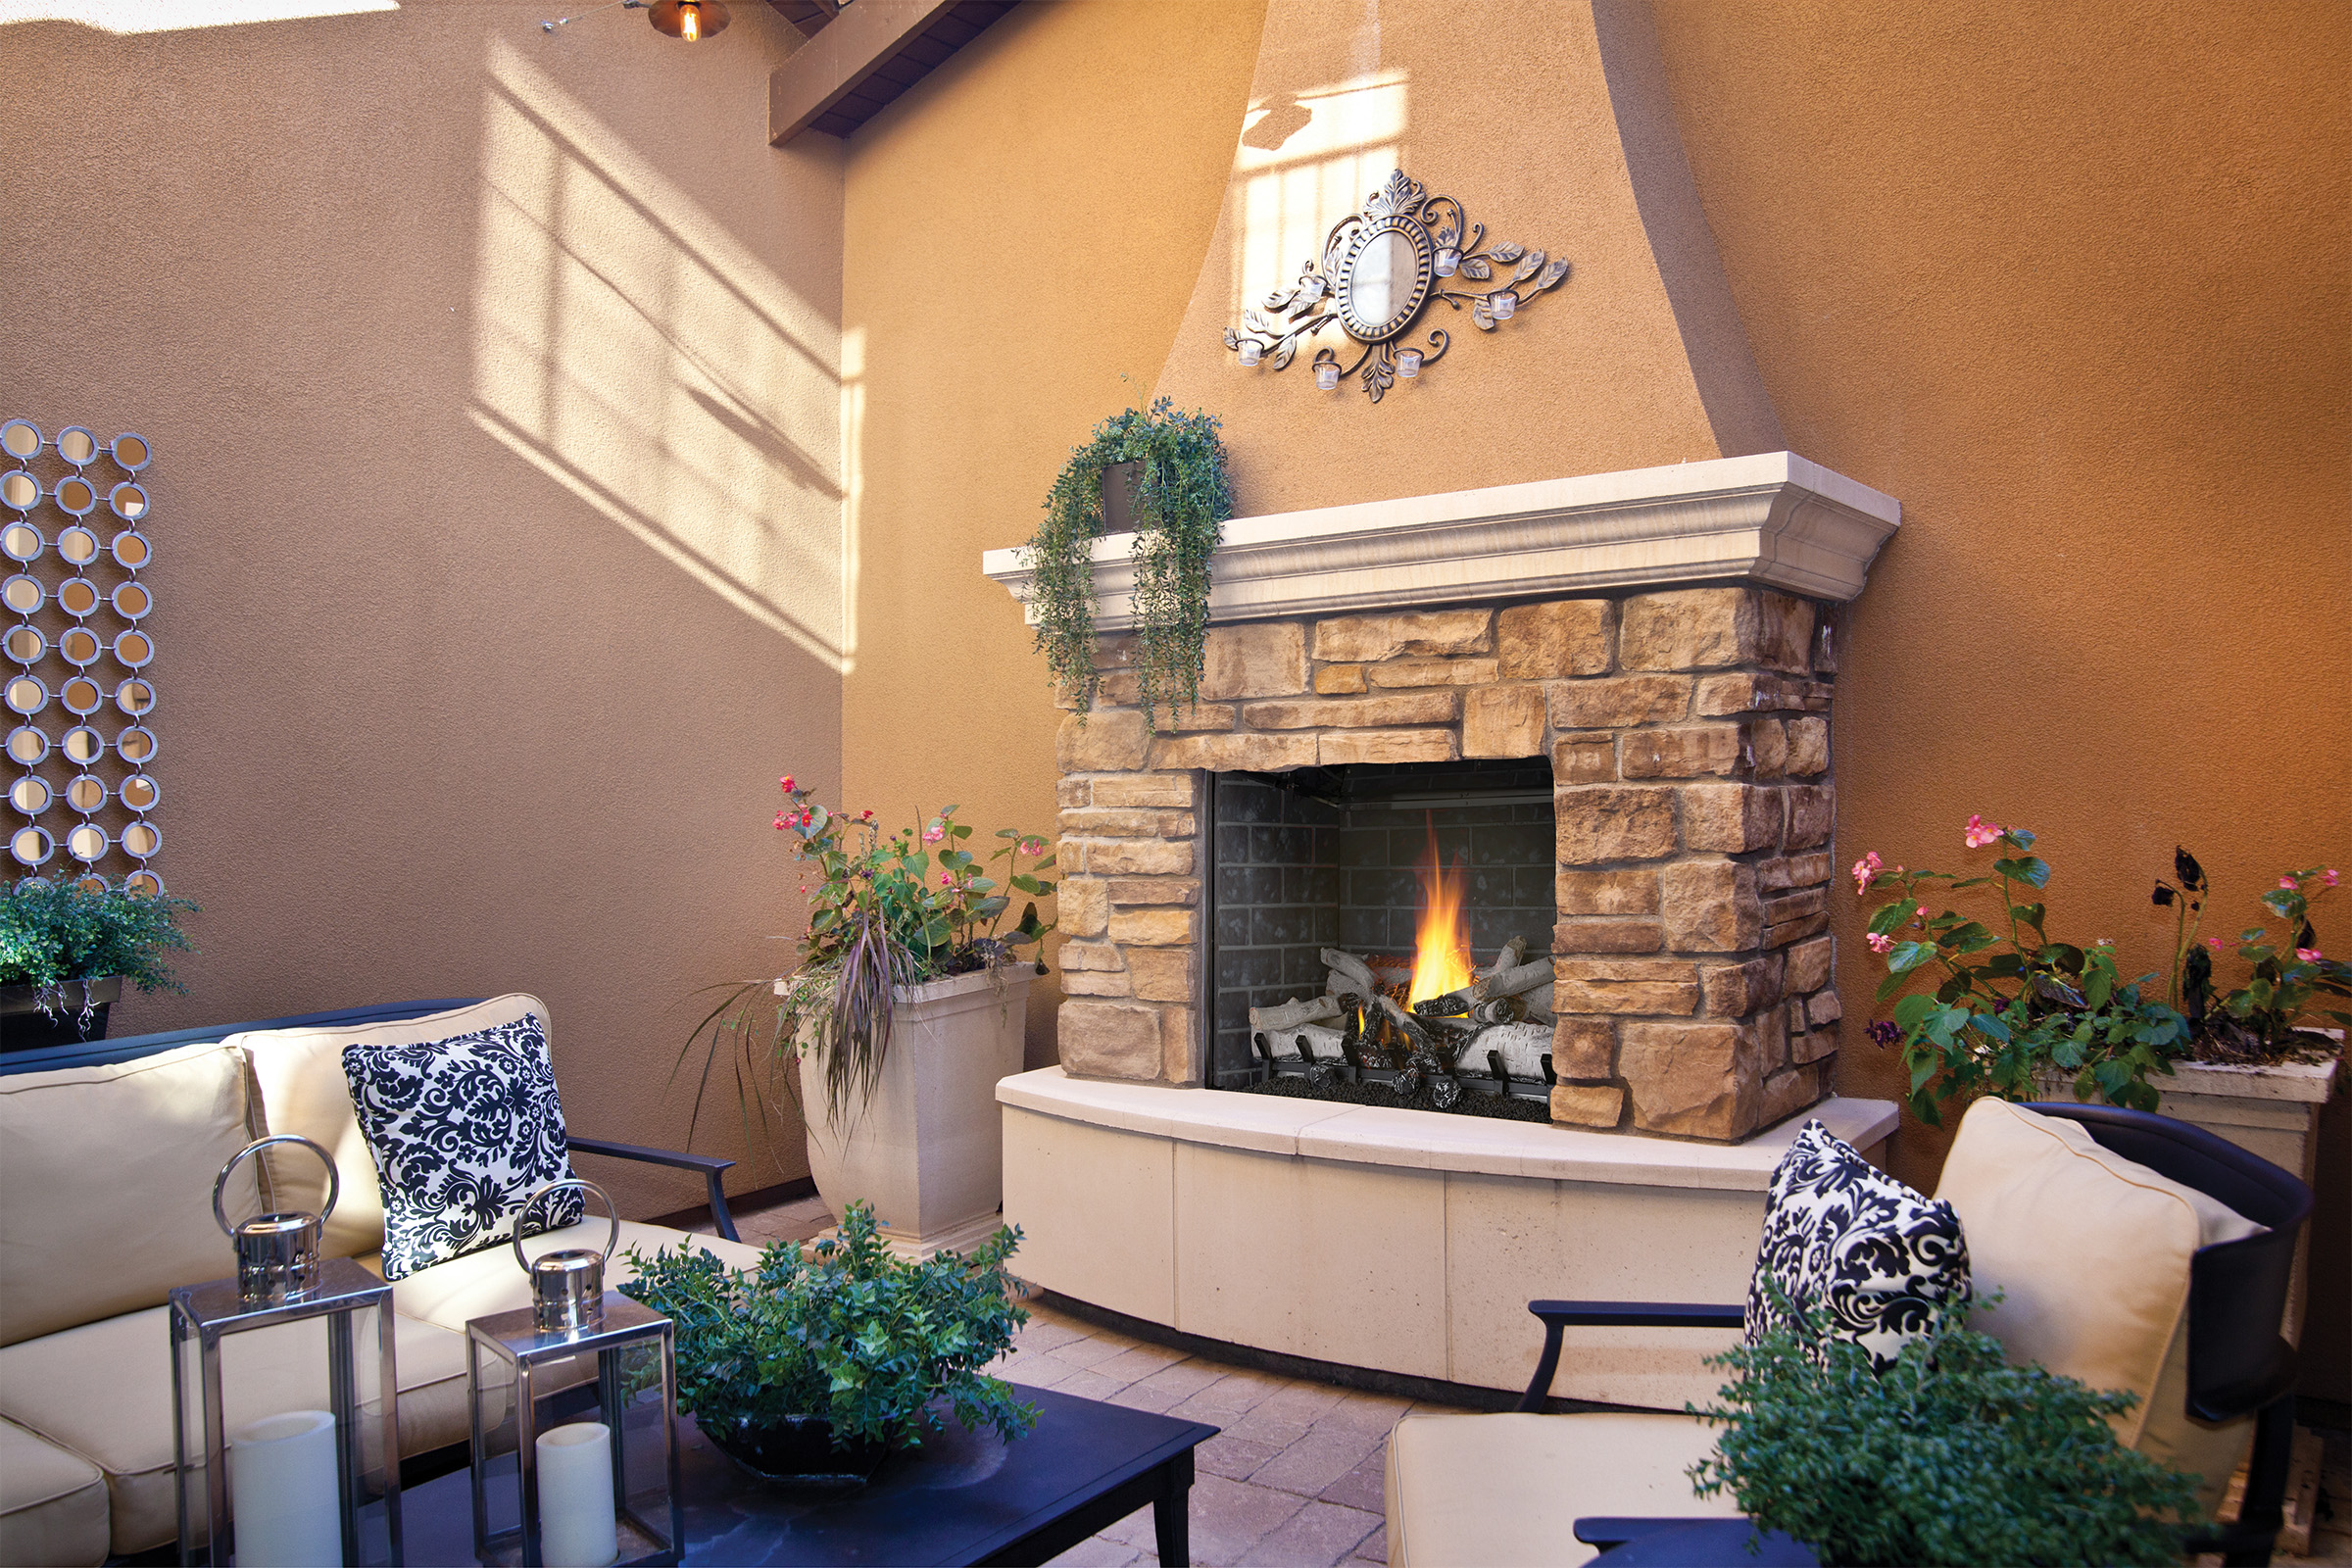 ideas gas fire integrated area harmony tampa bay fireplace photos with features outdoor gallery design water photo fireplaces